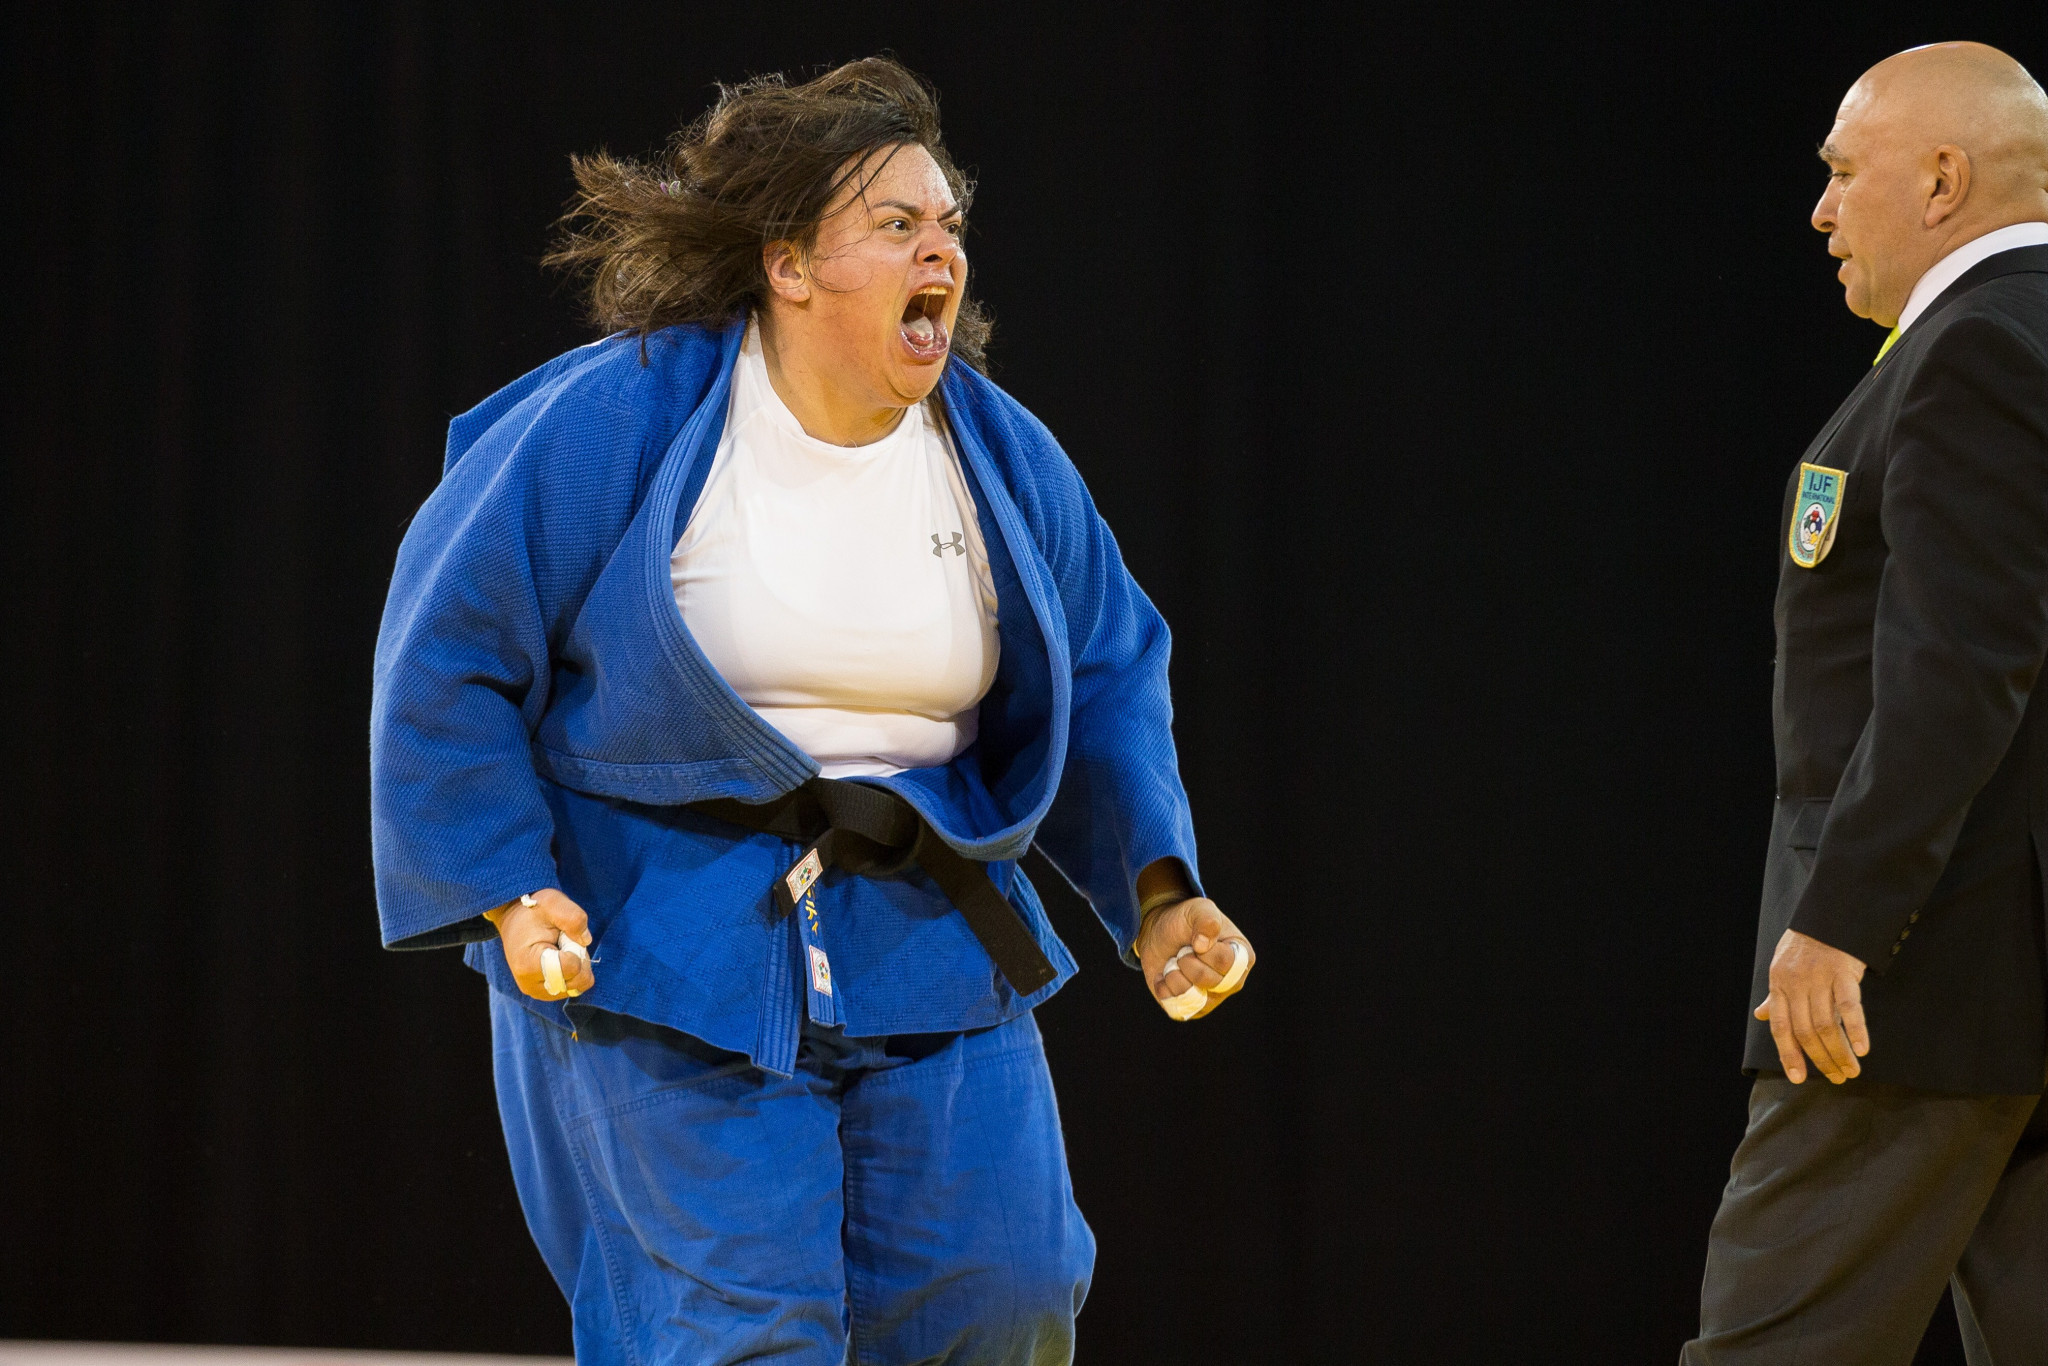 Vanessa Zambotti has three Pan American Games medals in judo ©Getty Images